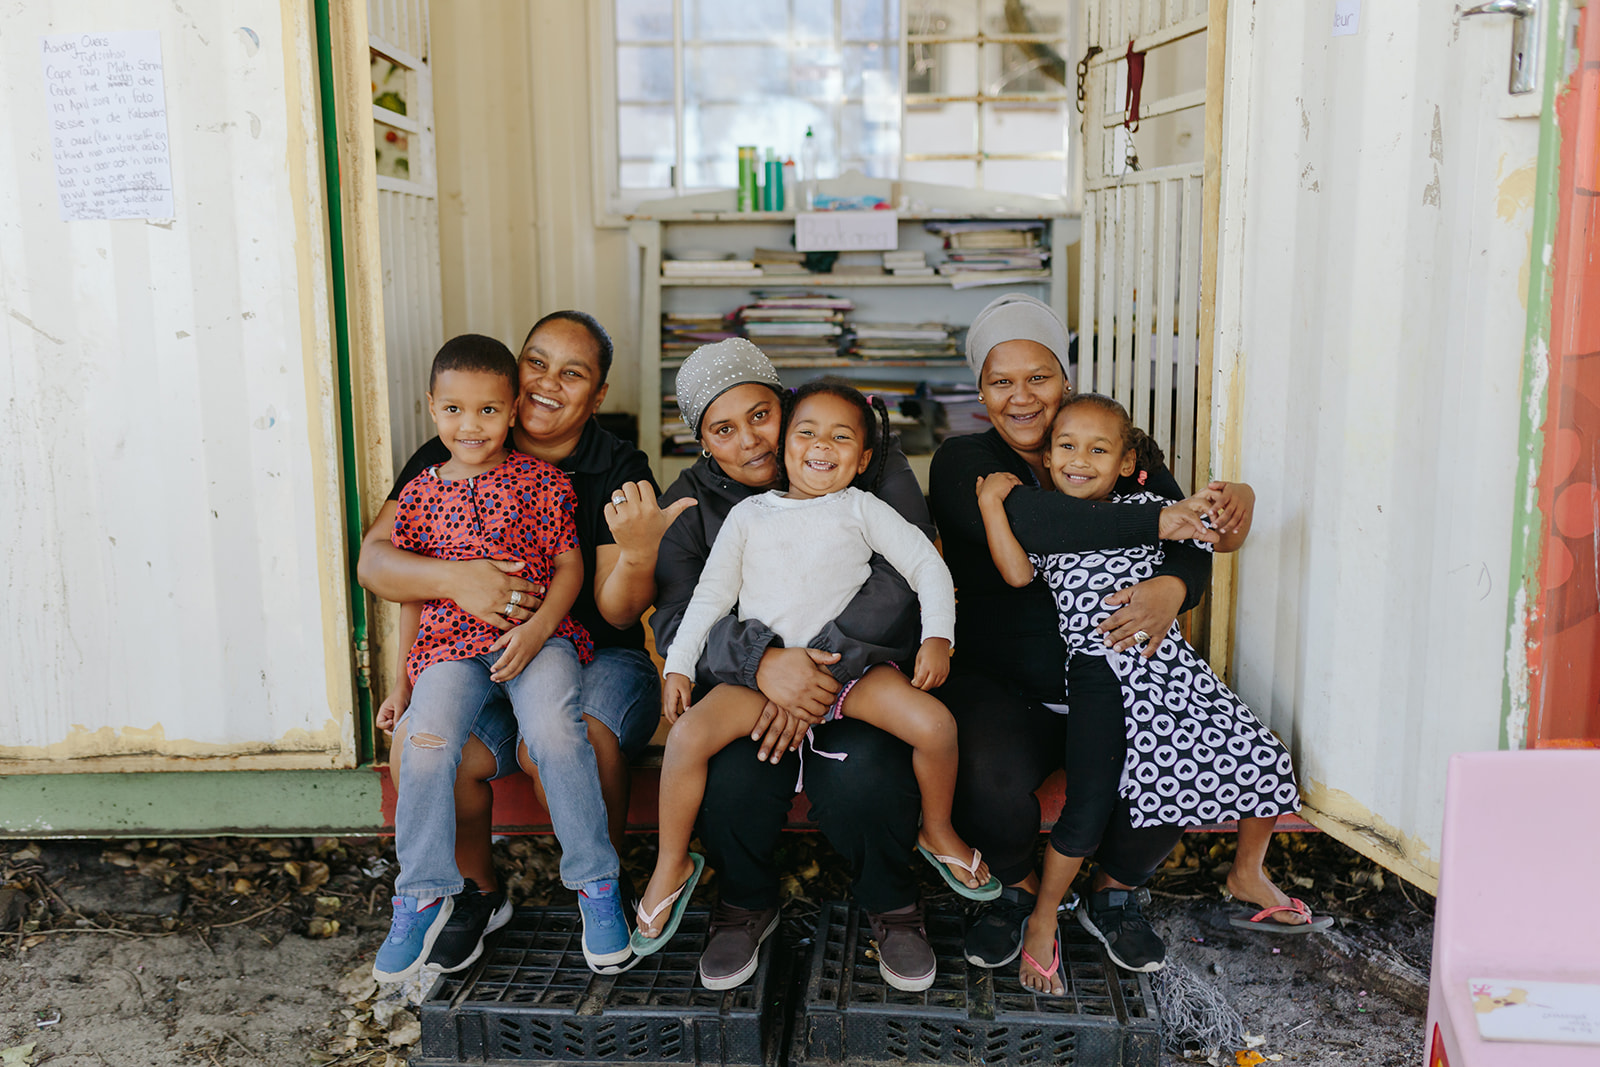 three parents with their children on their laps in front of the classroom container